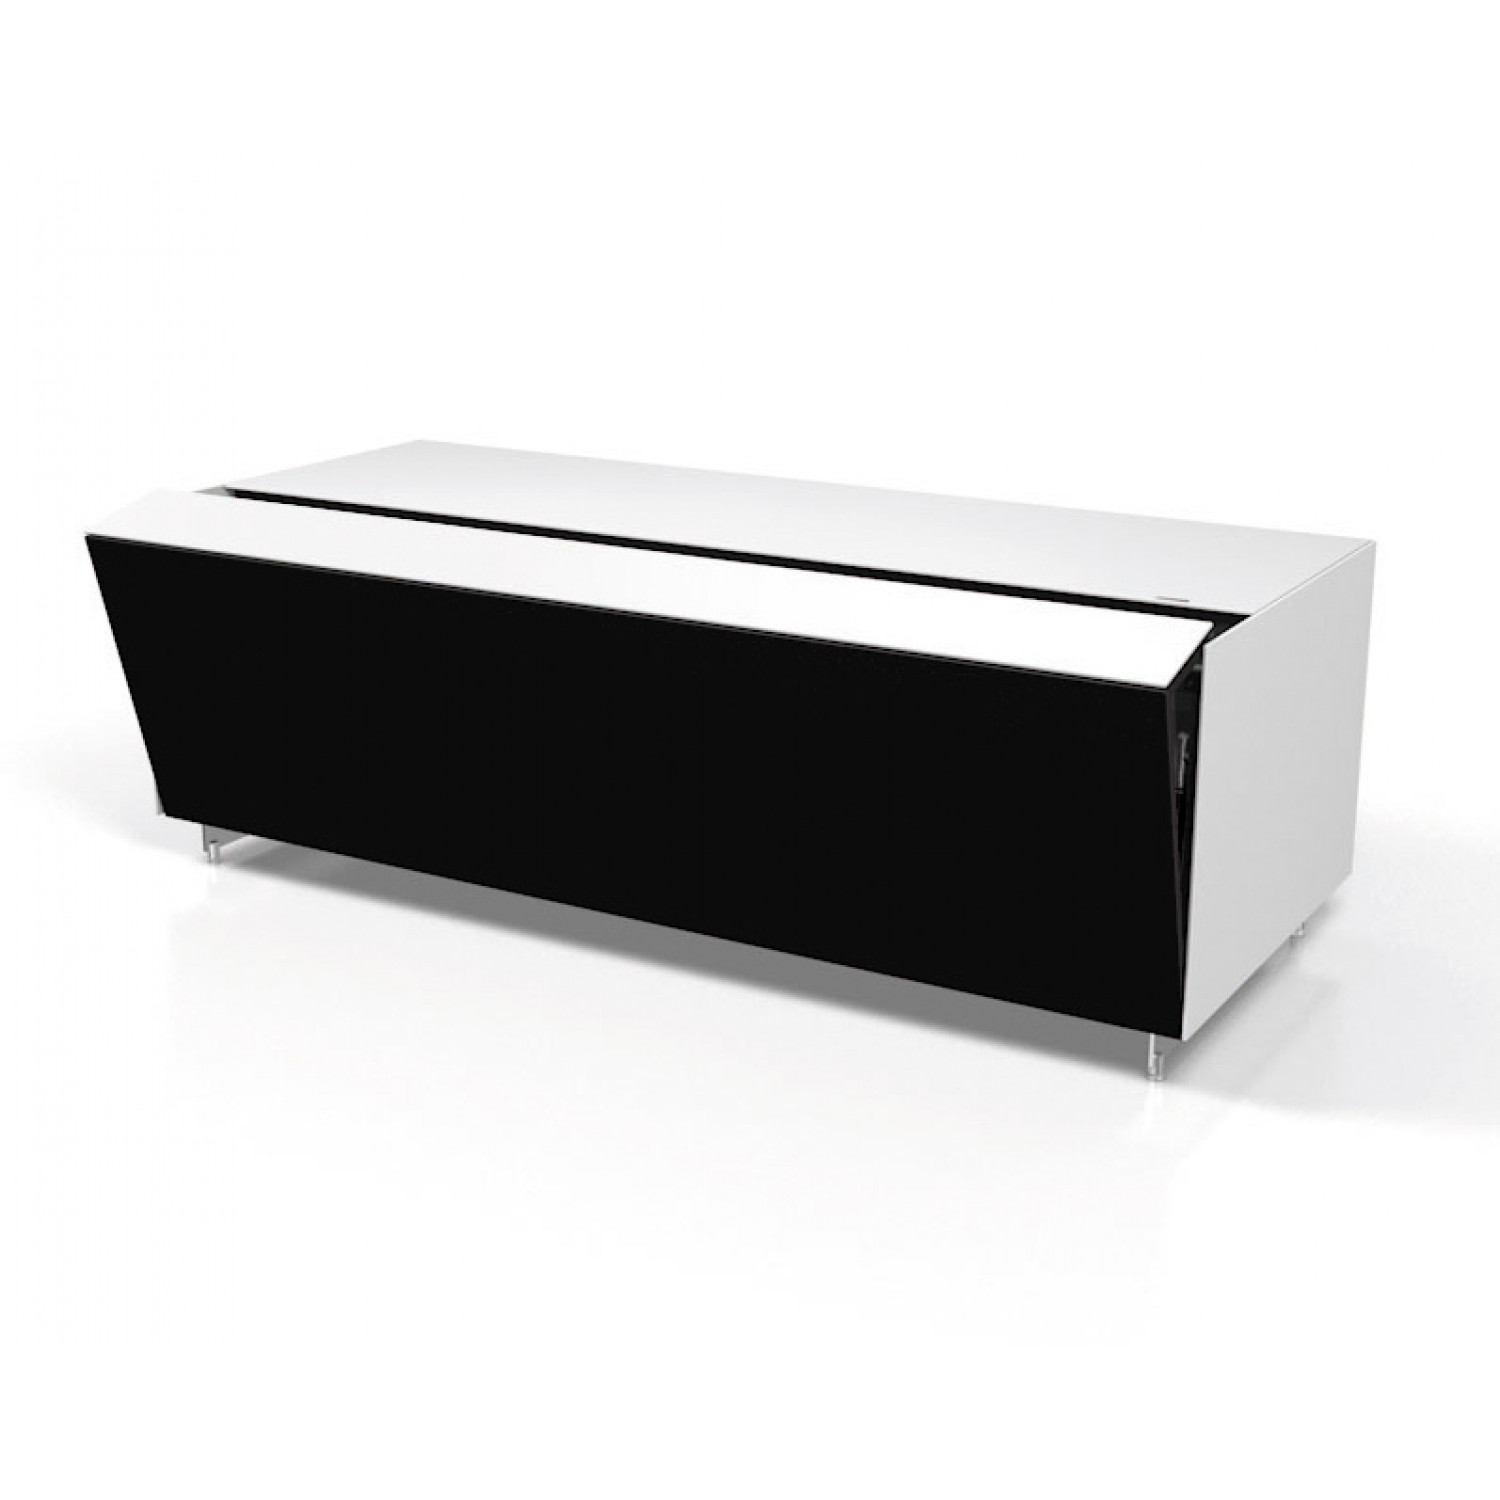 Spectral Cocoon spectral cocoon co5 tv cabinet